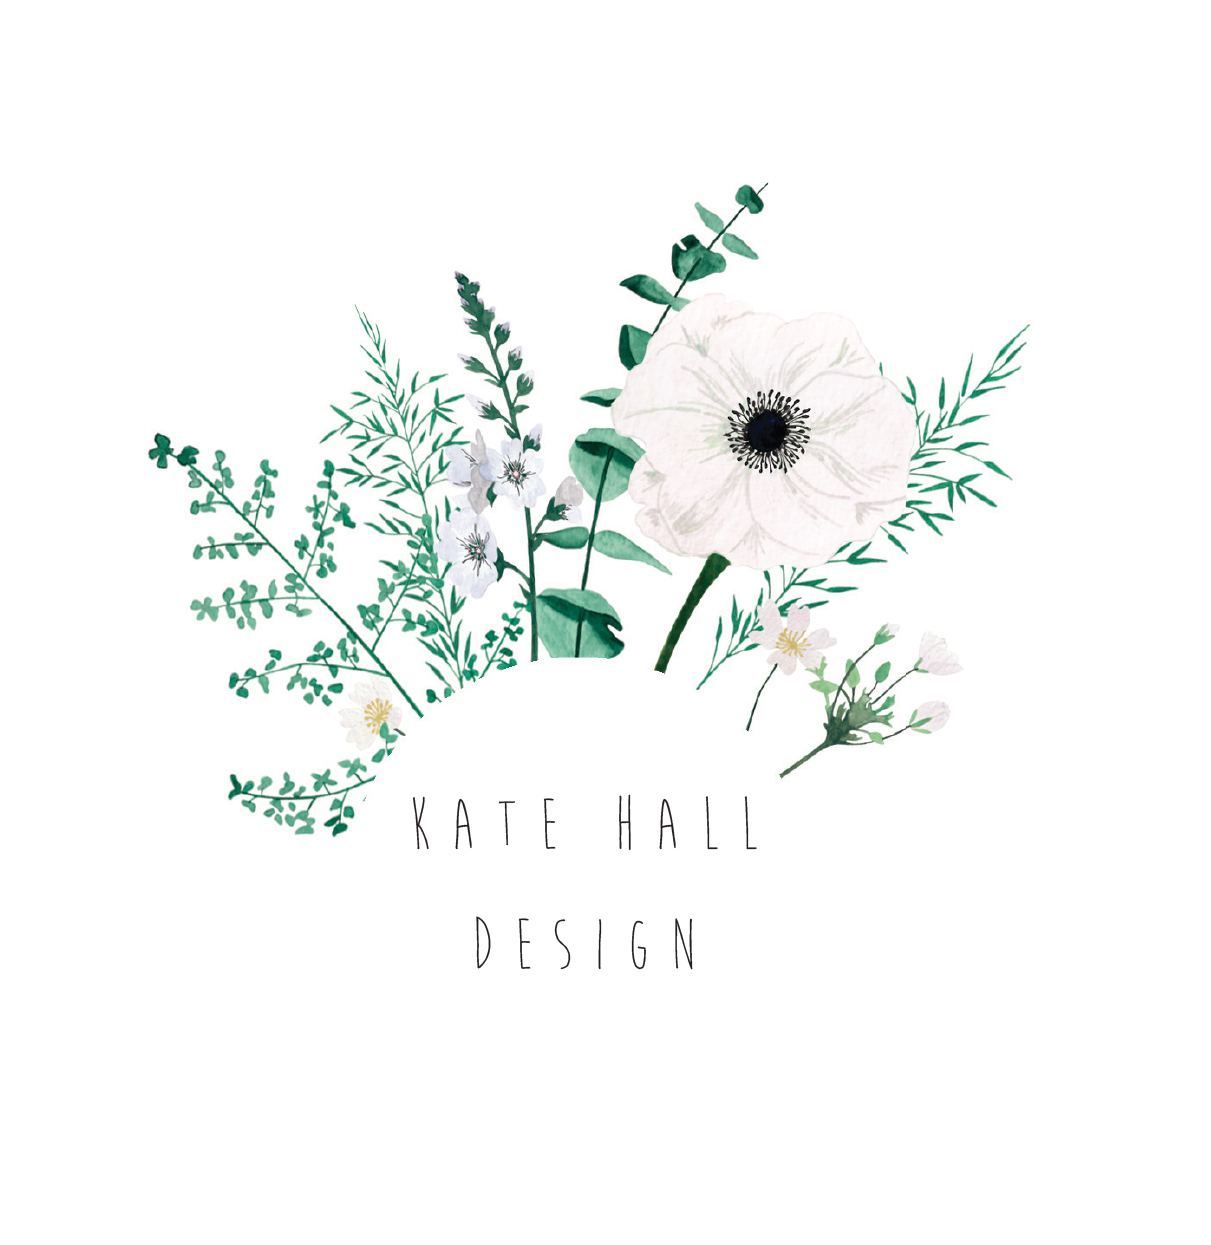 KATE HALL DESIGN